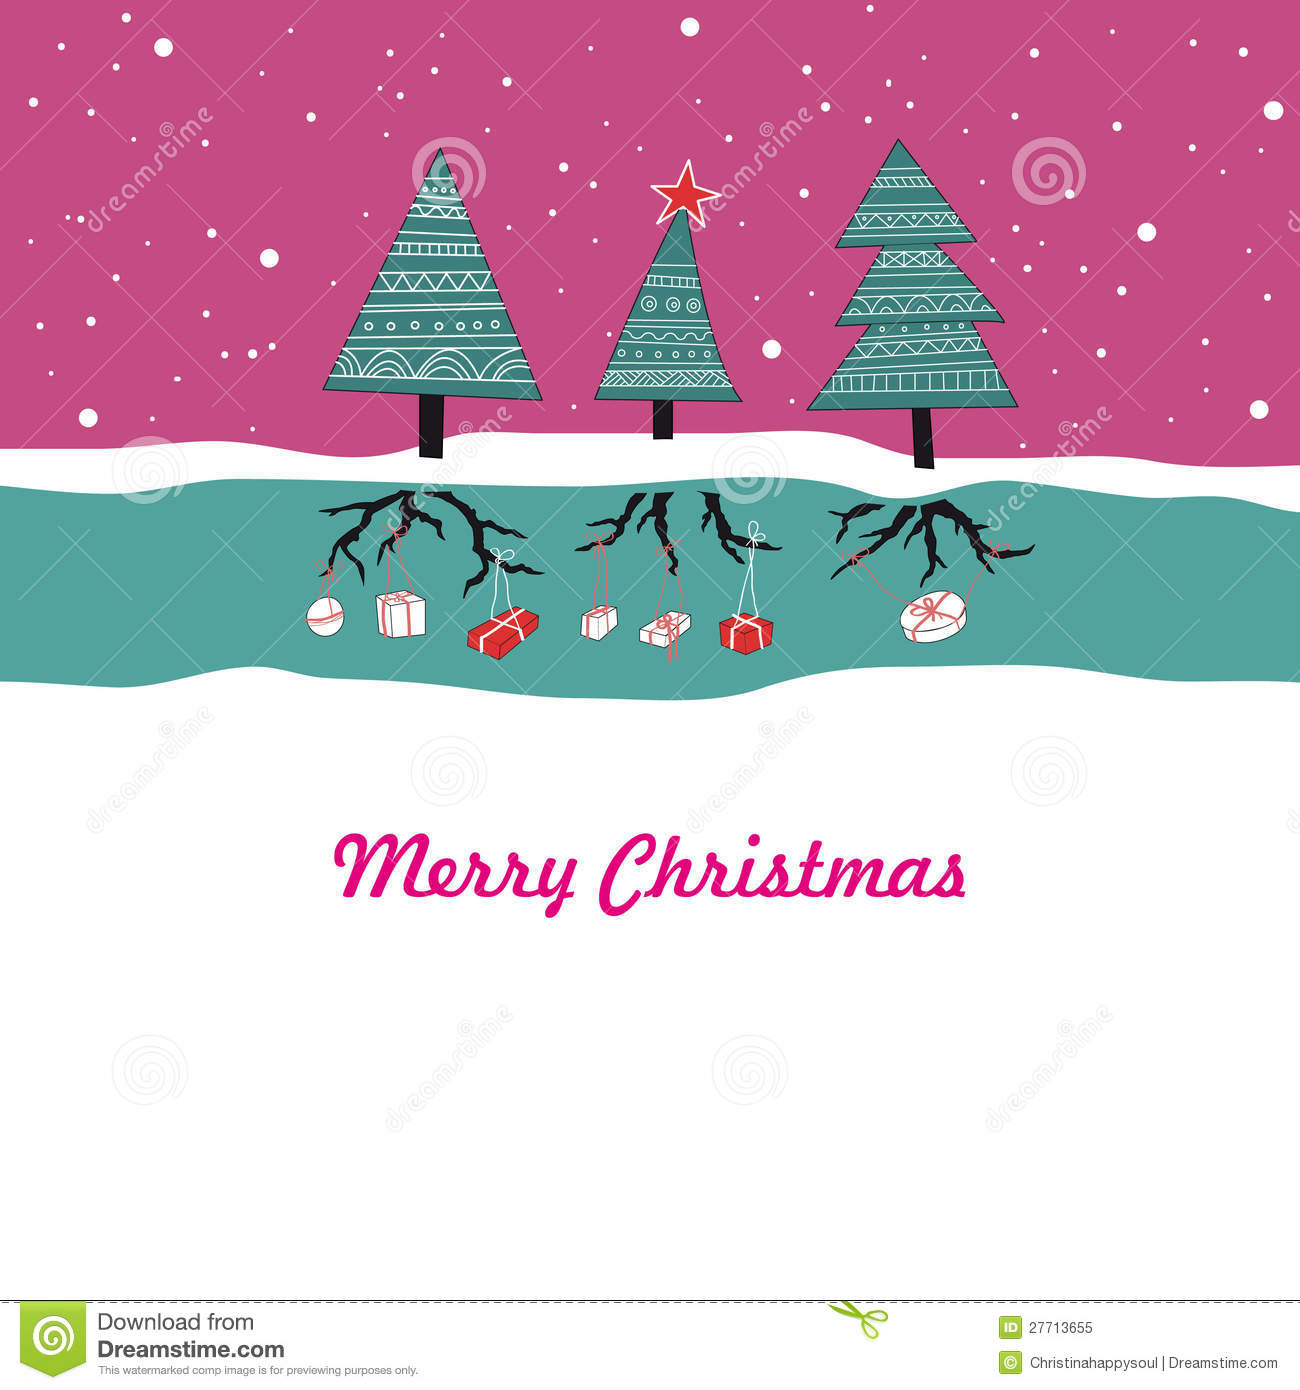 Cartoon Christmas Card Royalty Free Stock Photo - Image ...